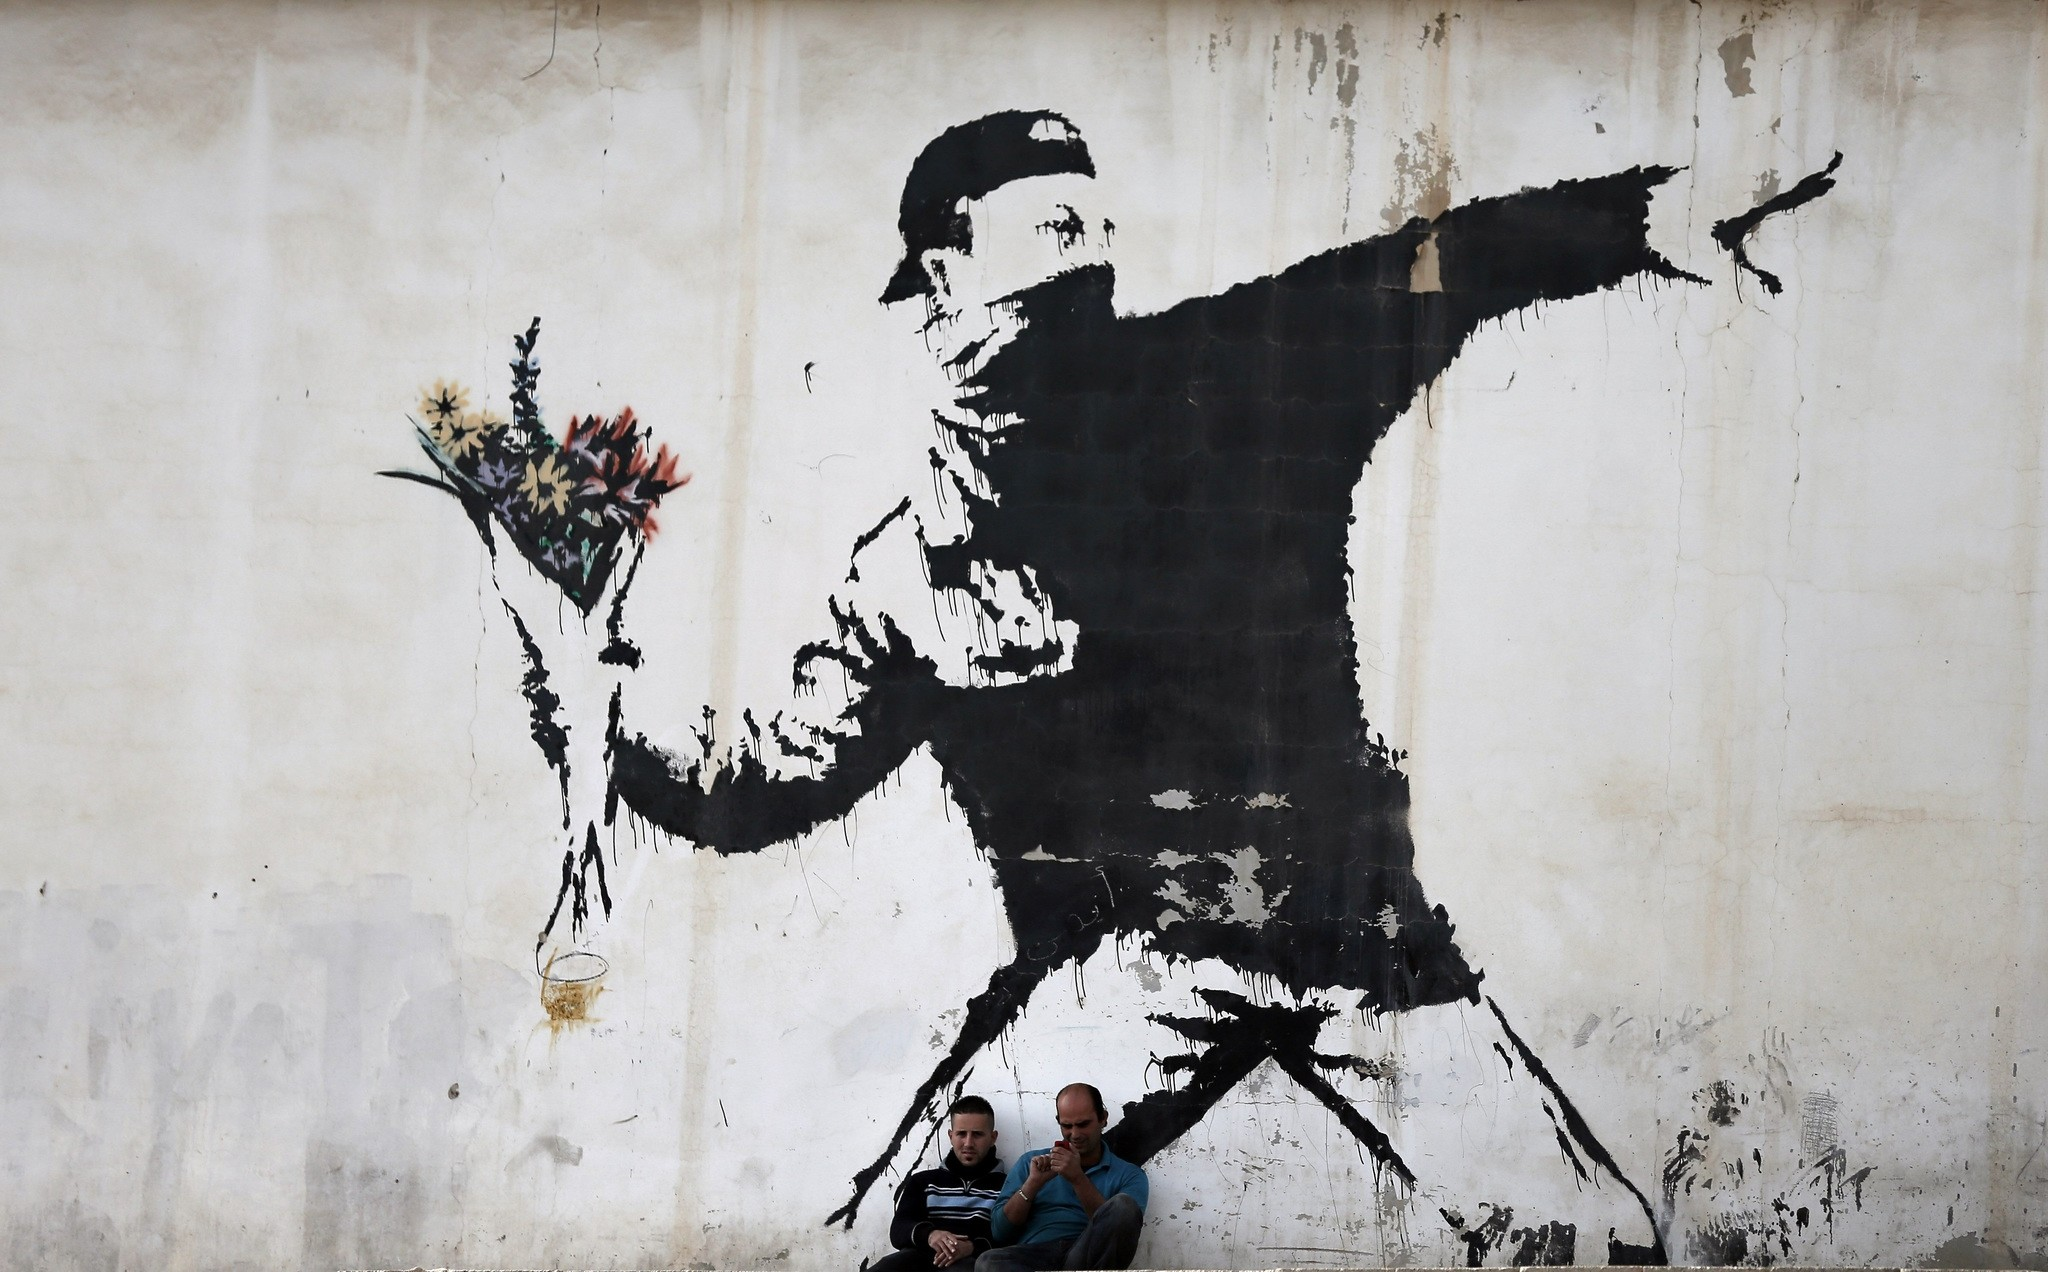 The secrecy around the British artist Banksy has spawned numerous theories about who he really is, with the latest positing that he was a member of the trip hop group Massive Attack, which, like him, emerged from the English city of Bristol.